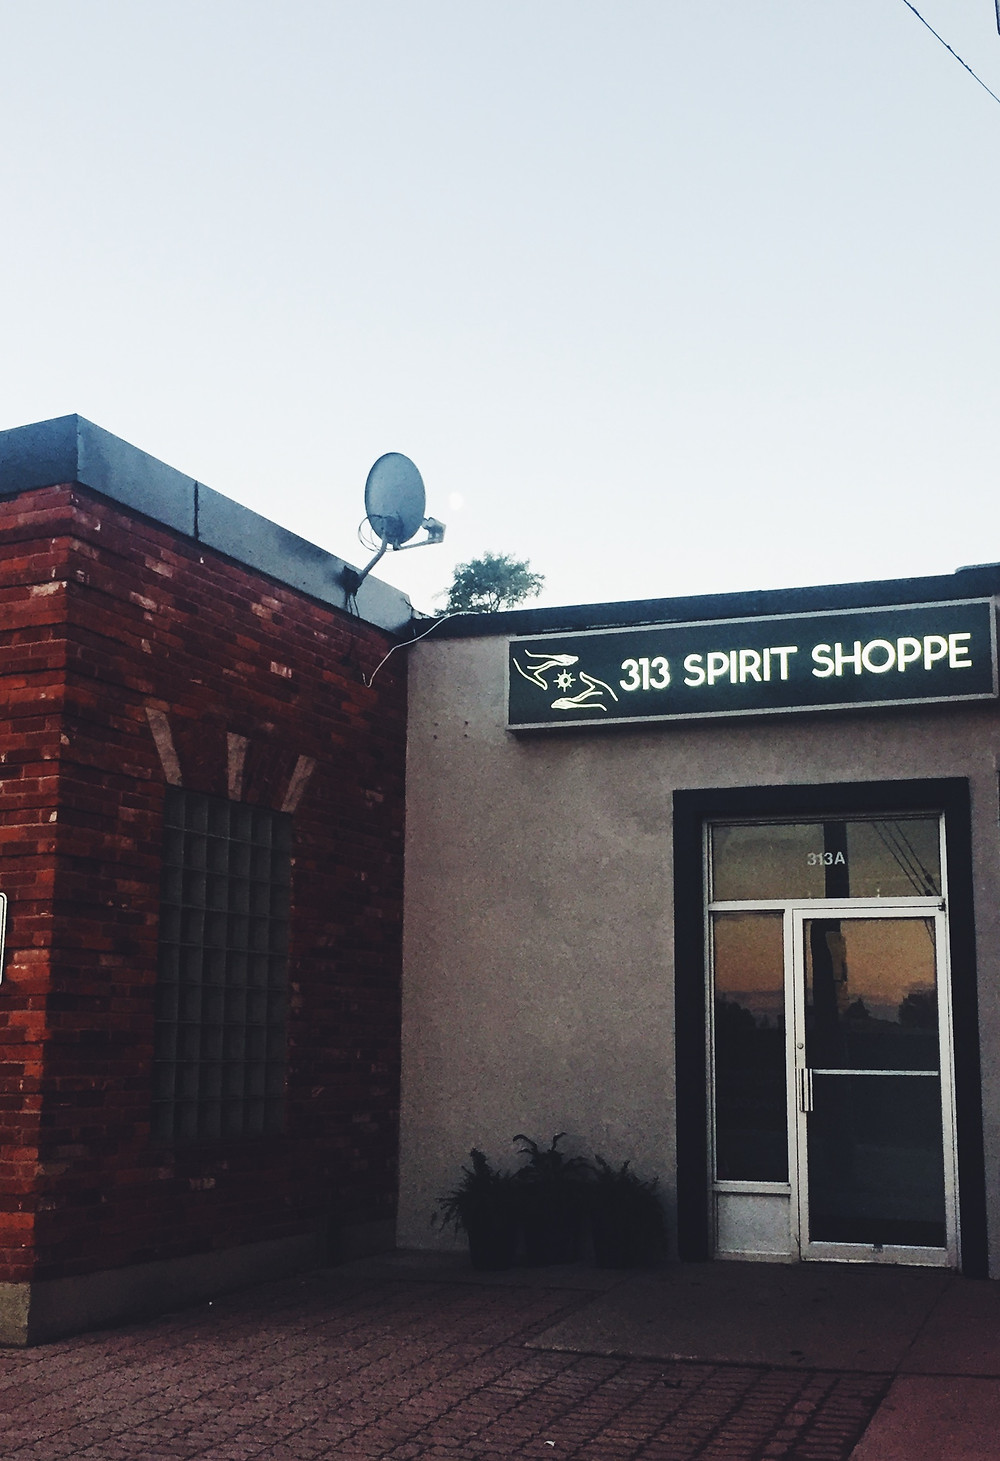 313 Spirit Shoppe at it's former location of 313A Hurontario Street in Collingwood